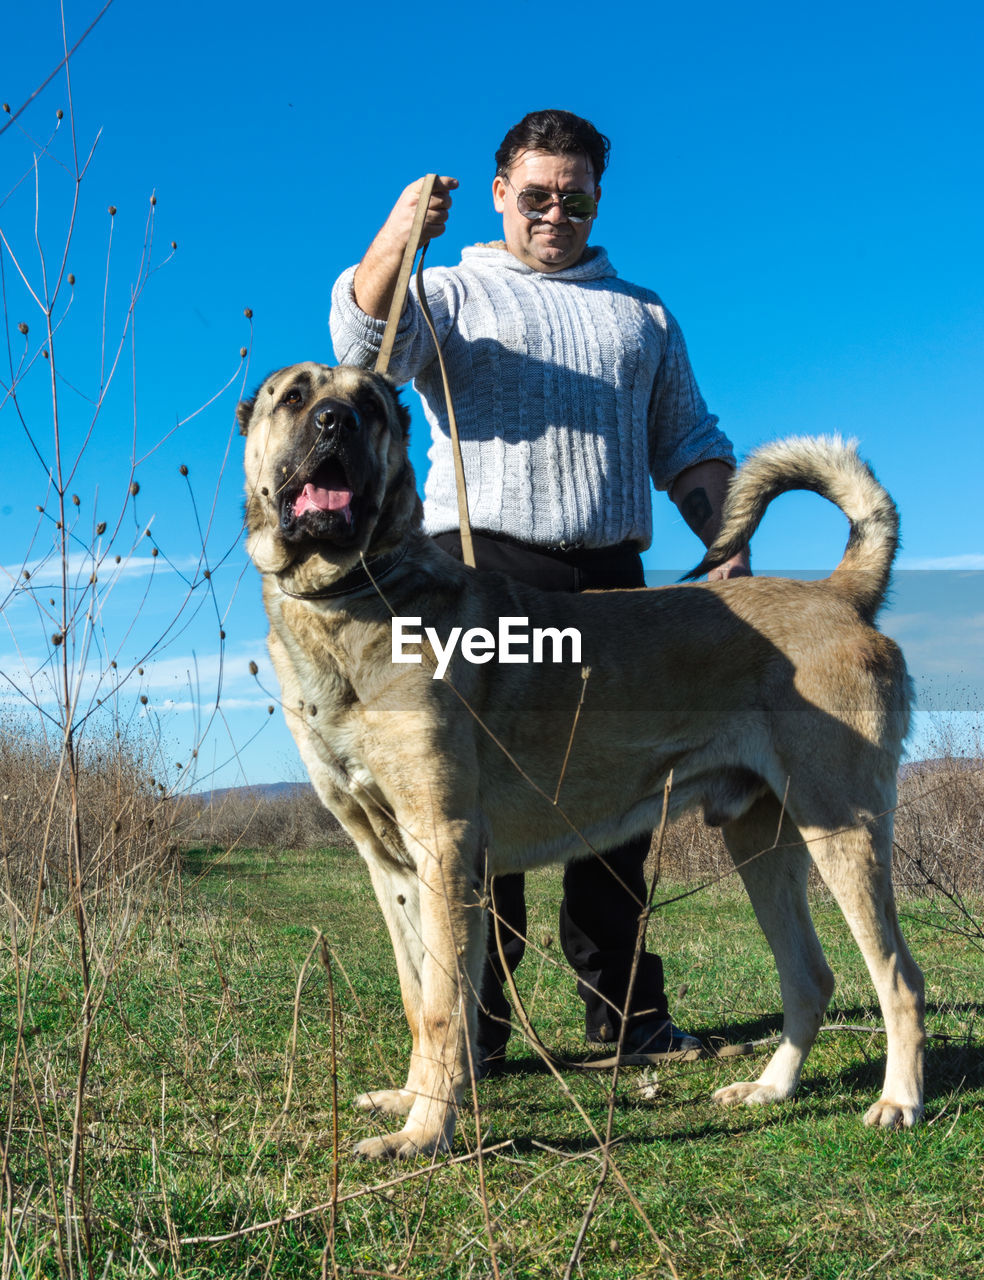 Man with dog standing on field against sky